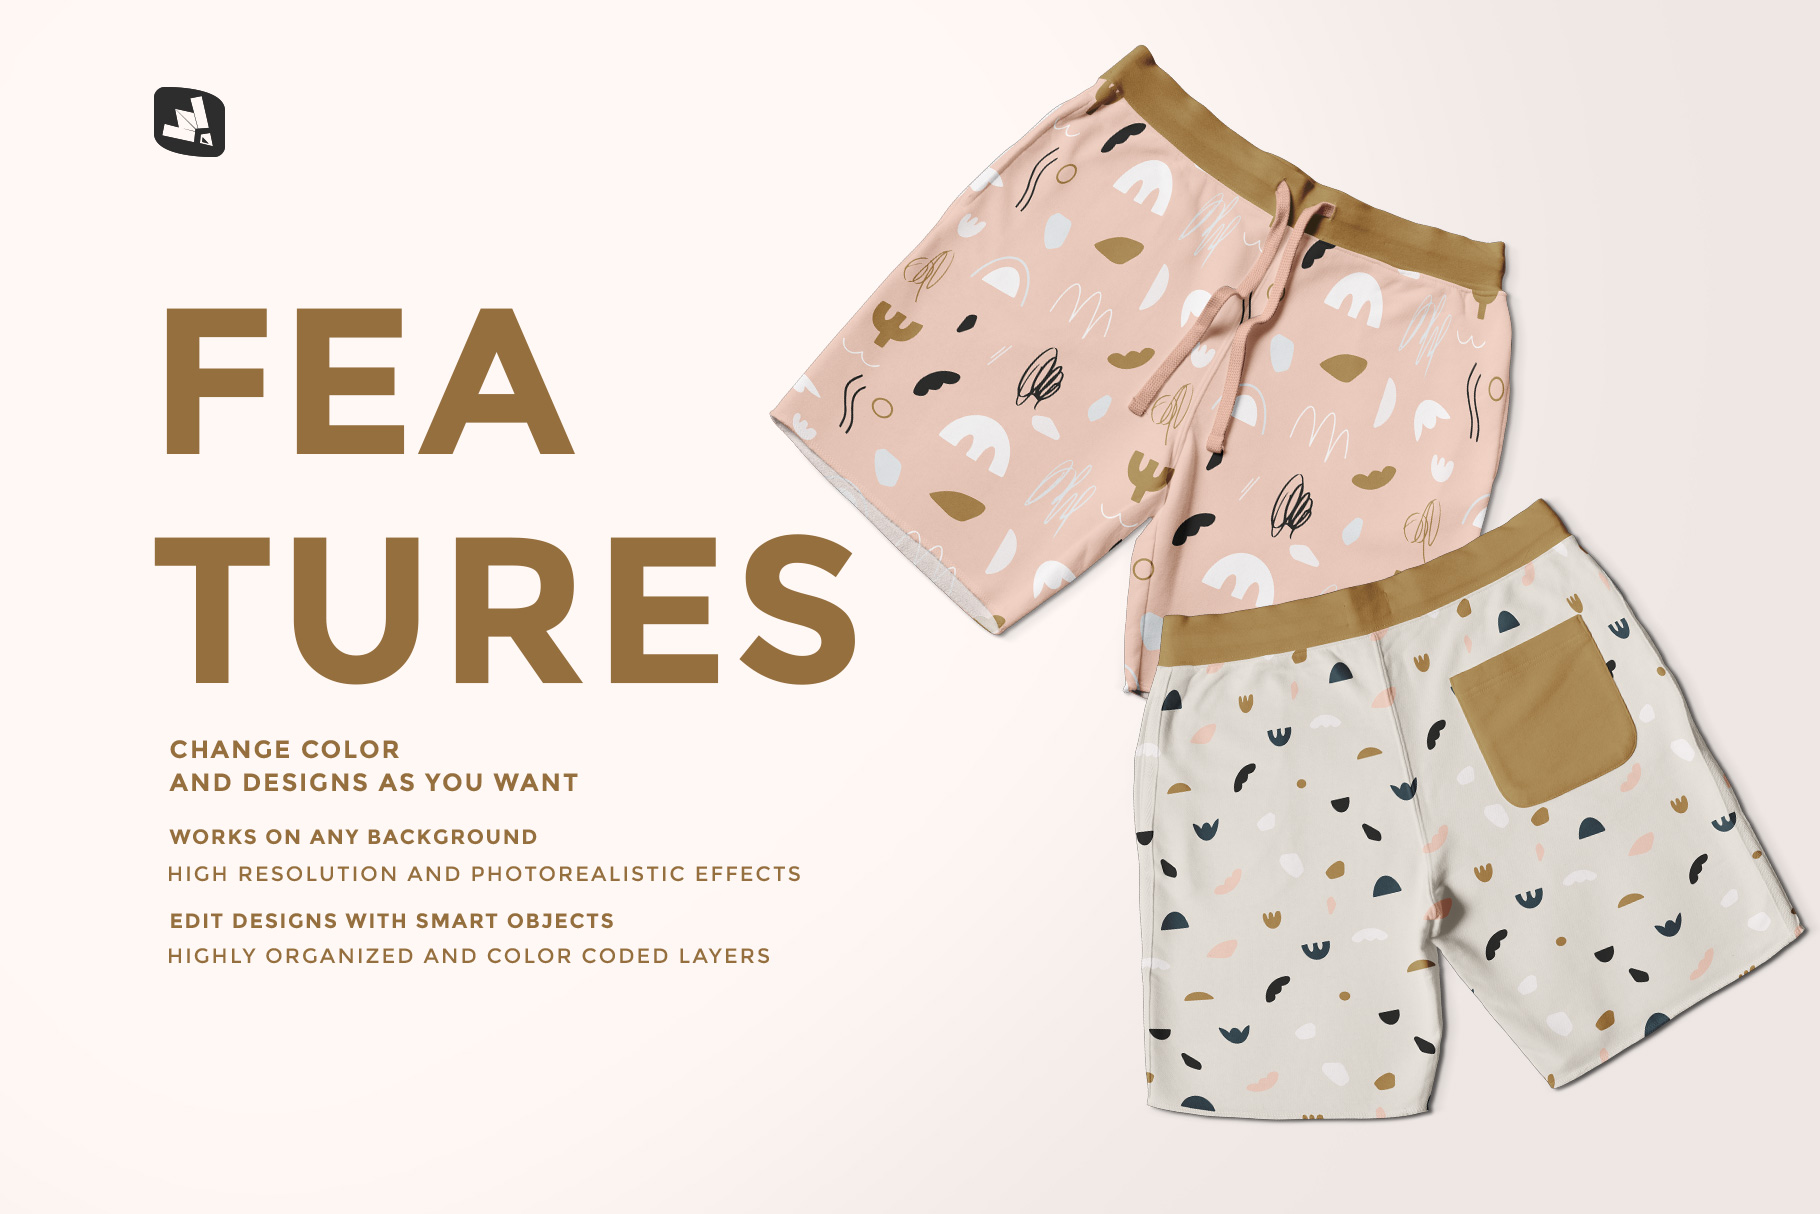 features of the top view cotton shorts mockup